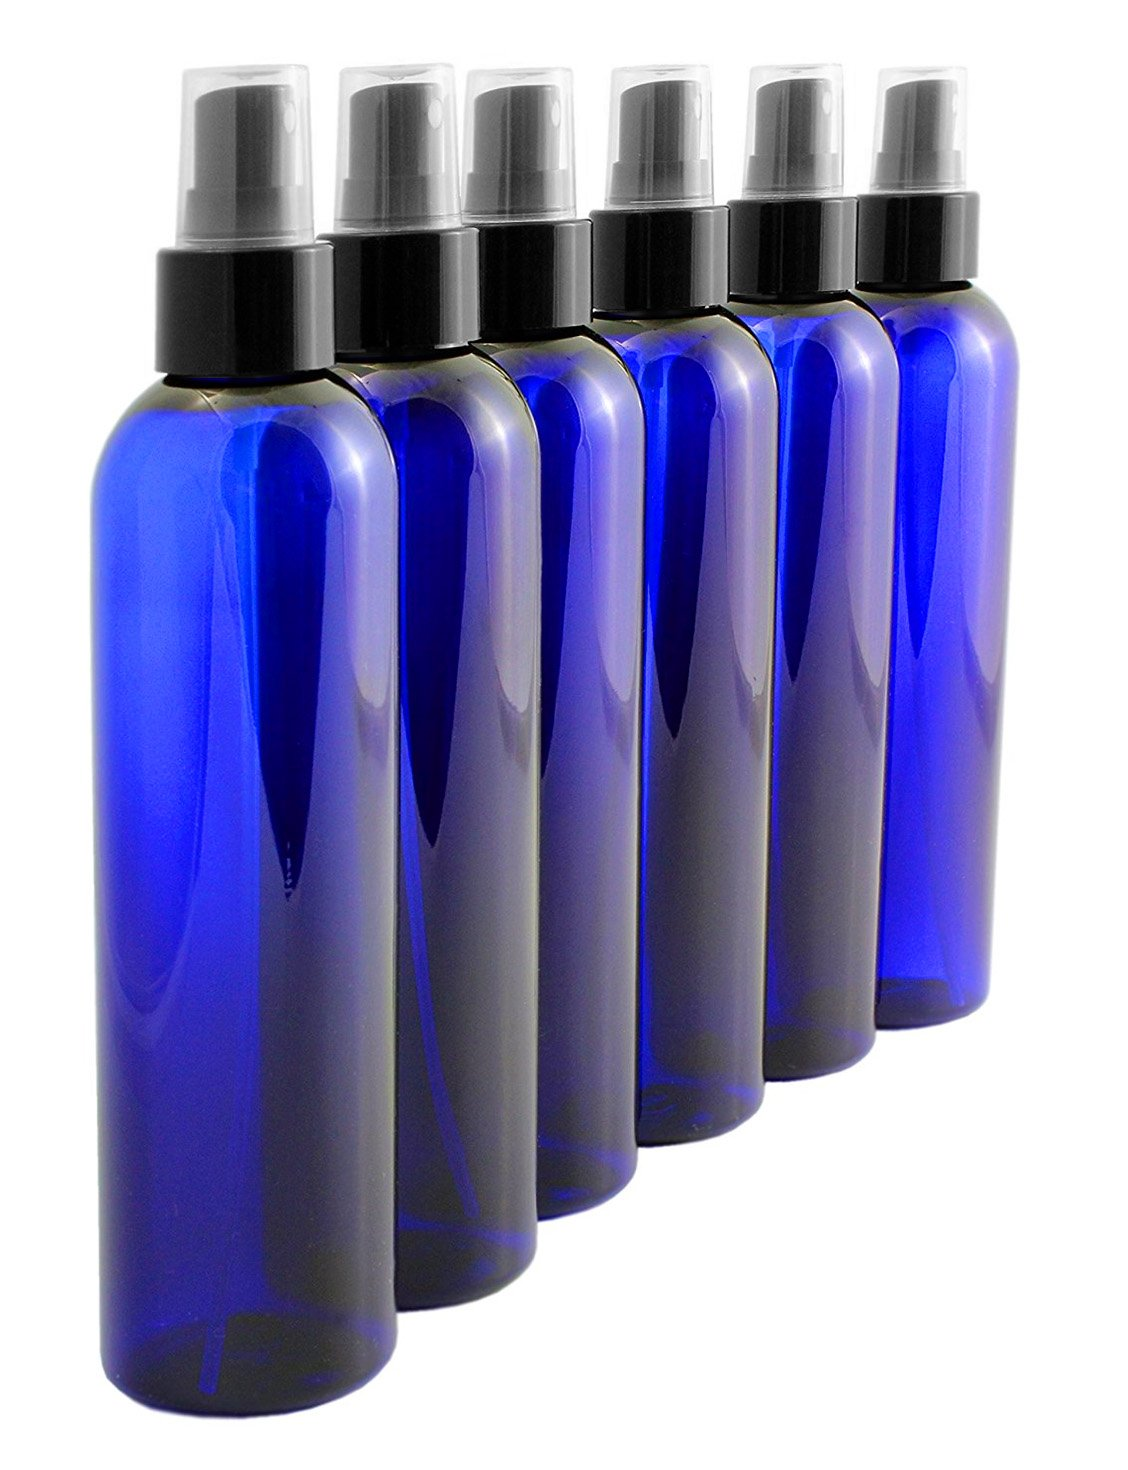 8oz Cobalt Blue Plastic PET Spray Bottles w/Fine Mist Atomizers (6-Pack); for DIY Home Cleaning, Aromatherapy, Beauty Care